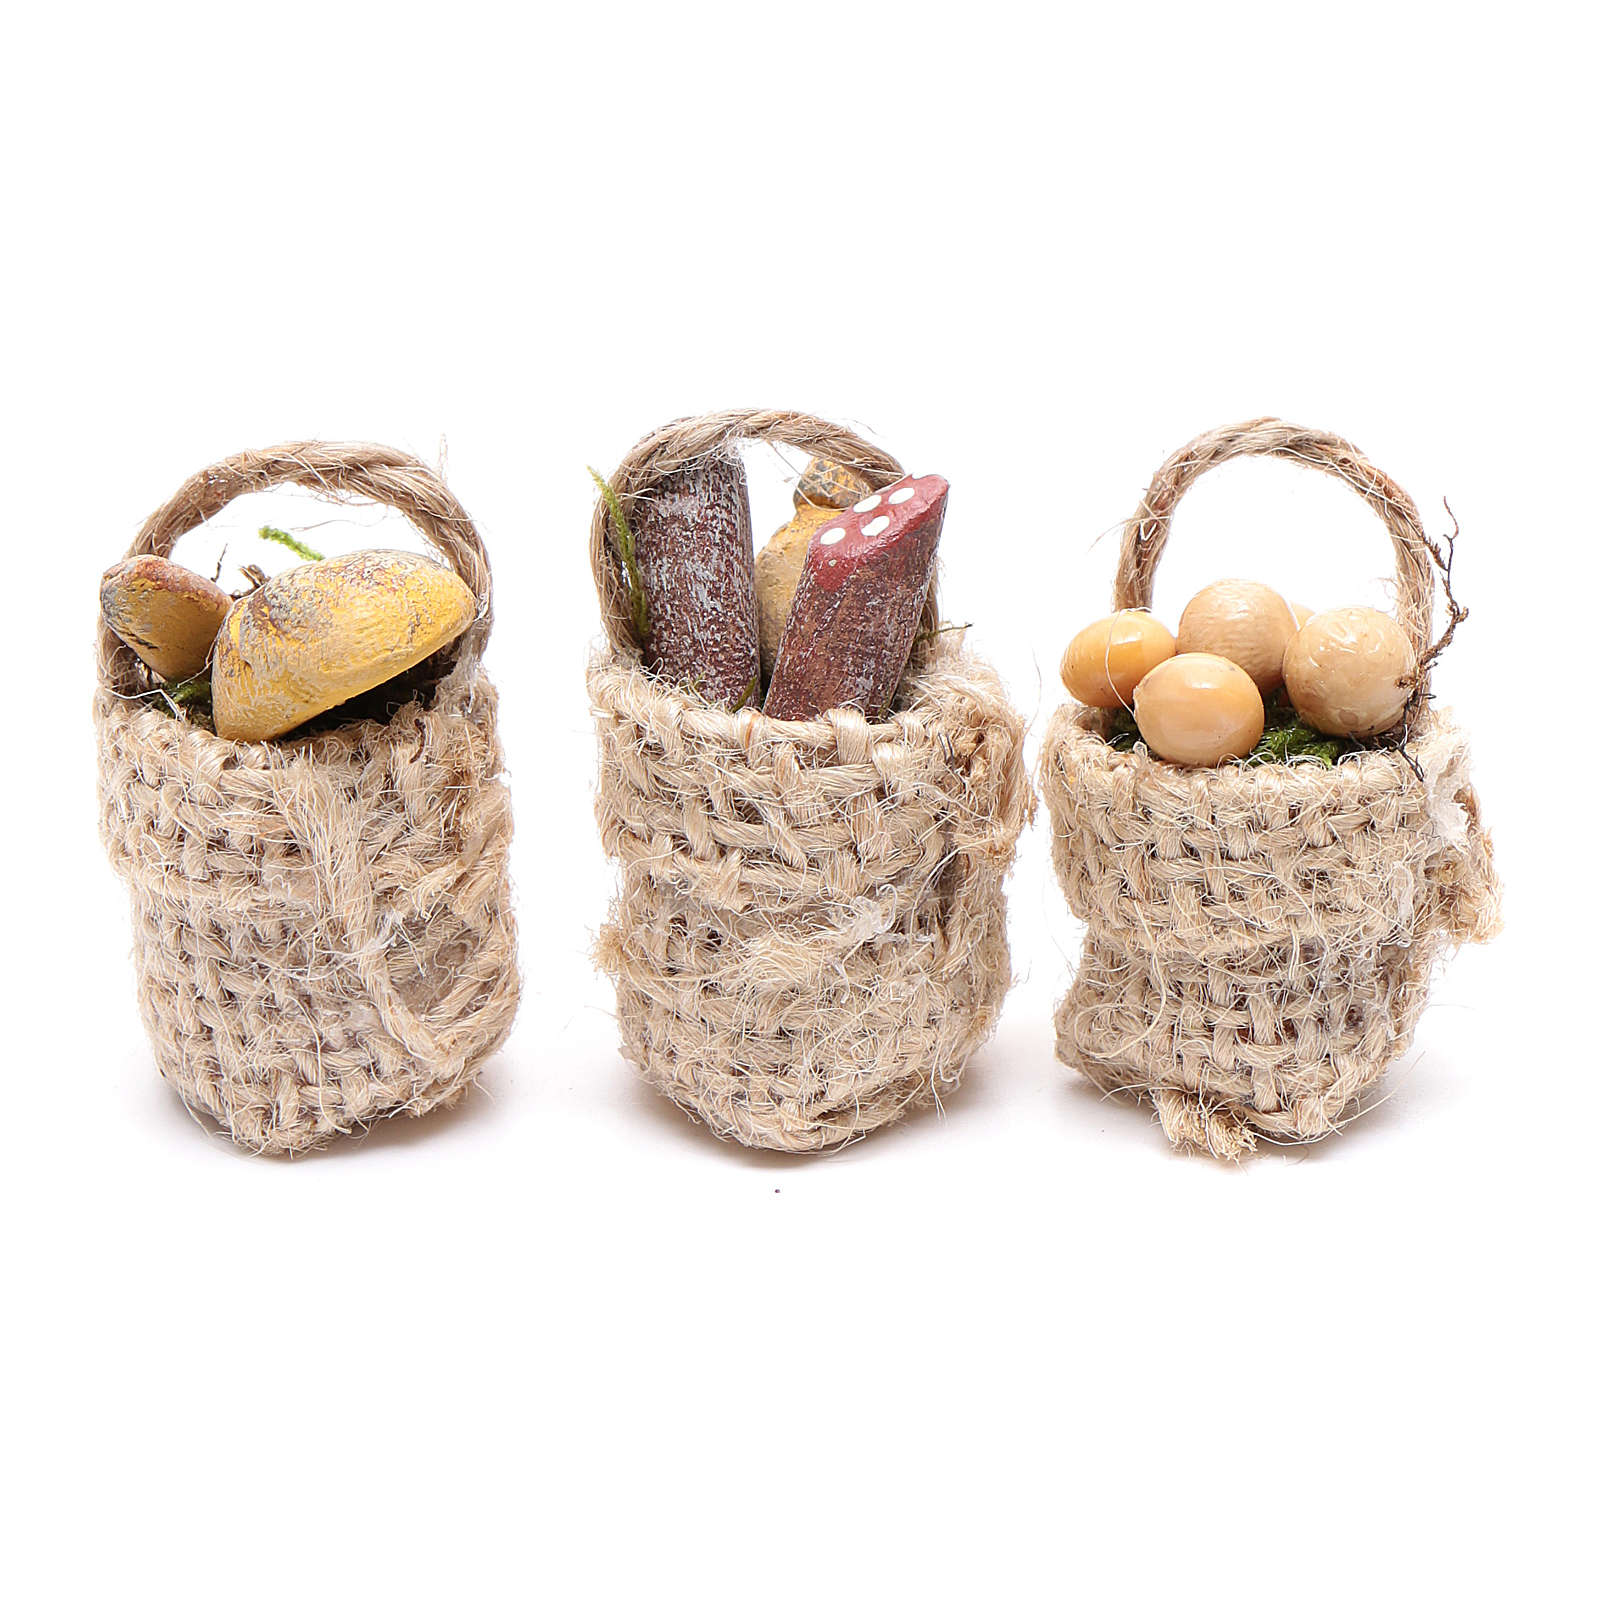 Eggs and sausage baskets 3 pieces 4